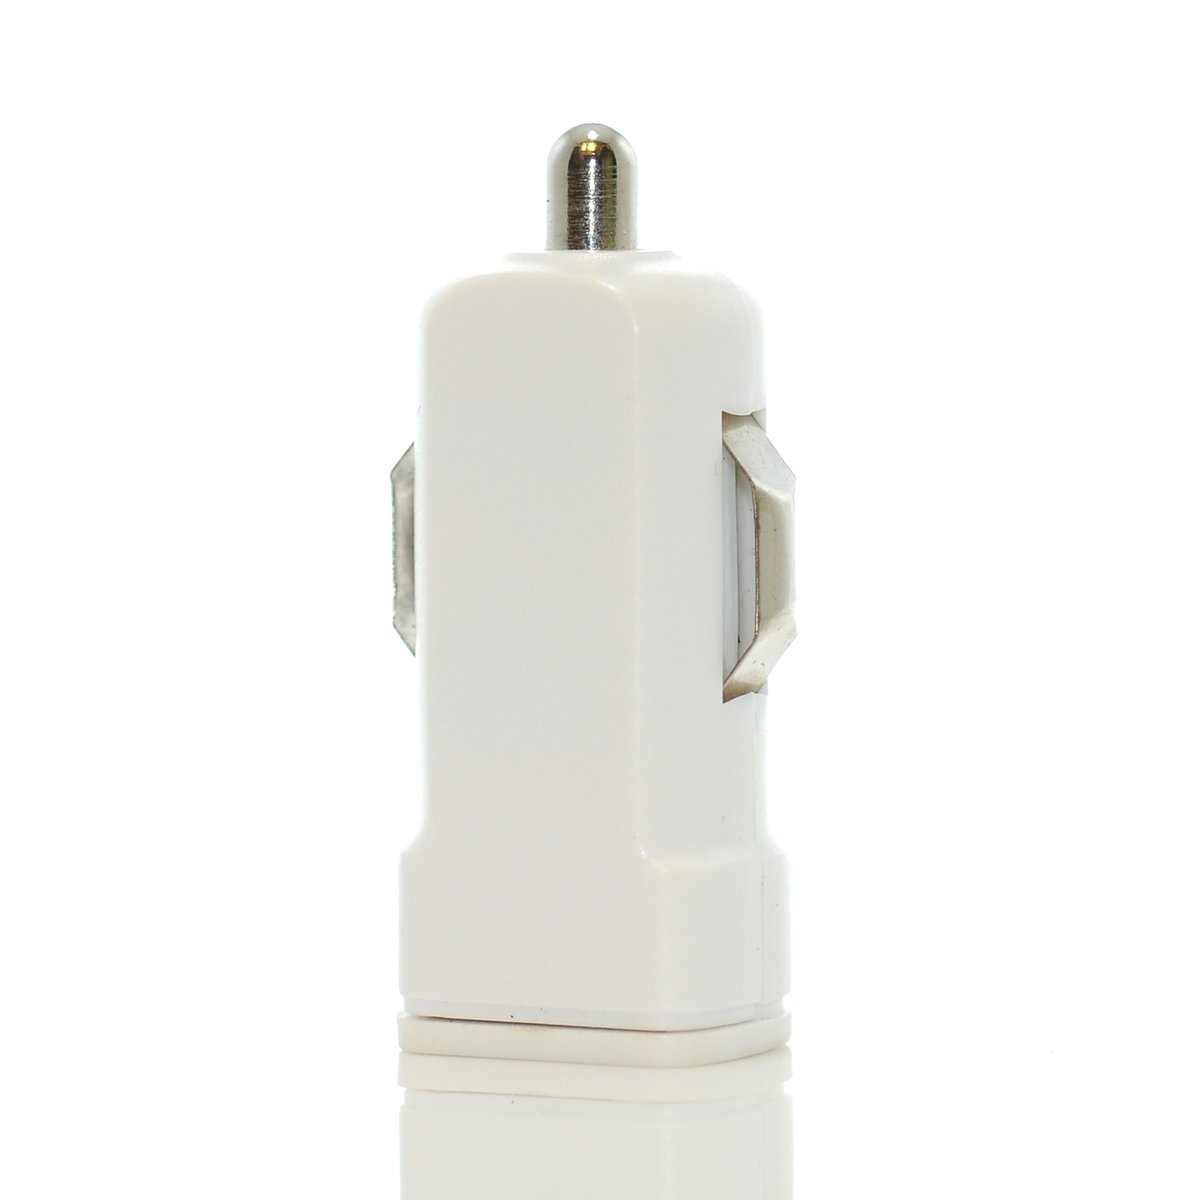 USB to 12v Car Adapter - Single USB port